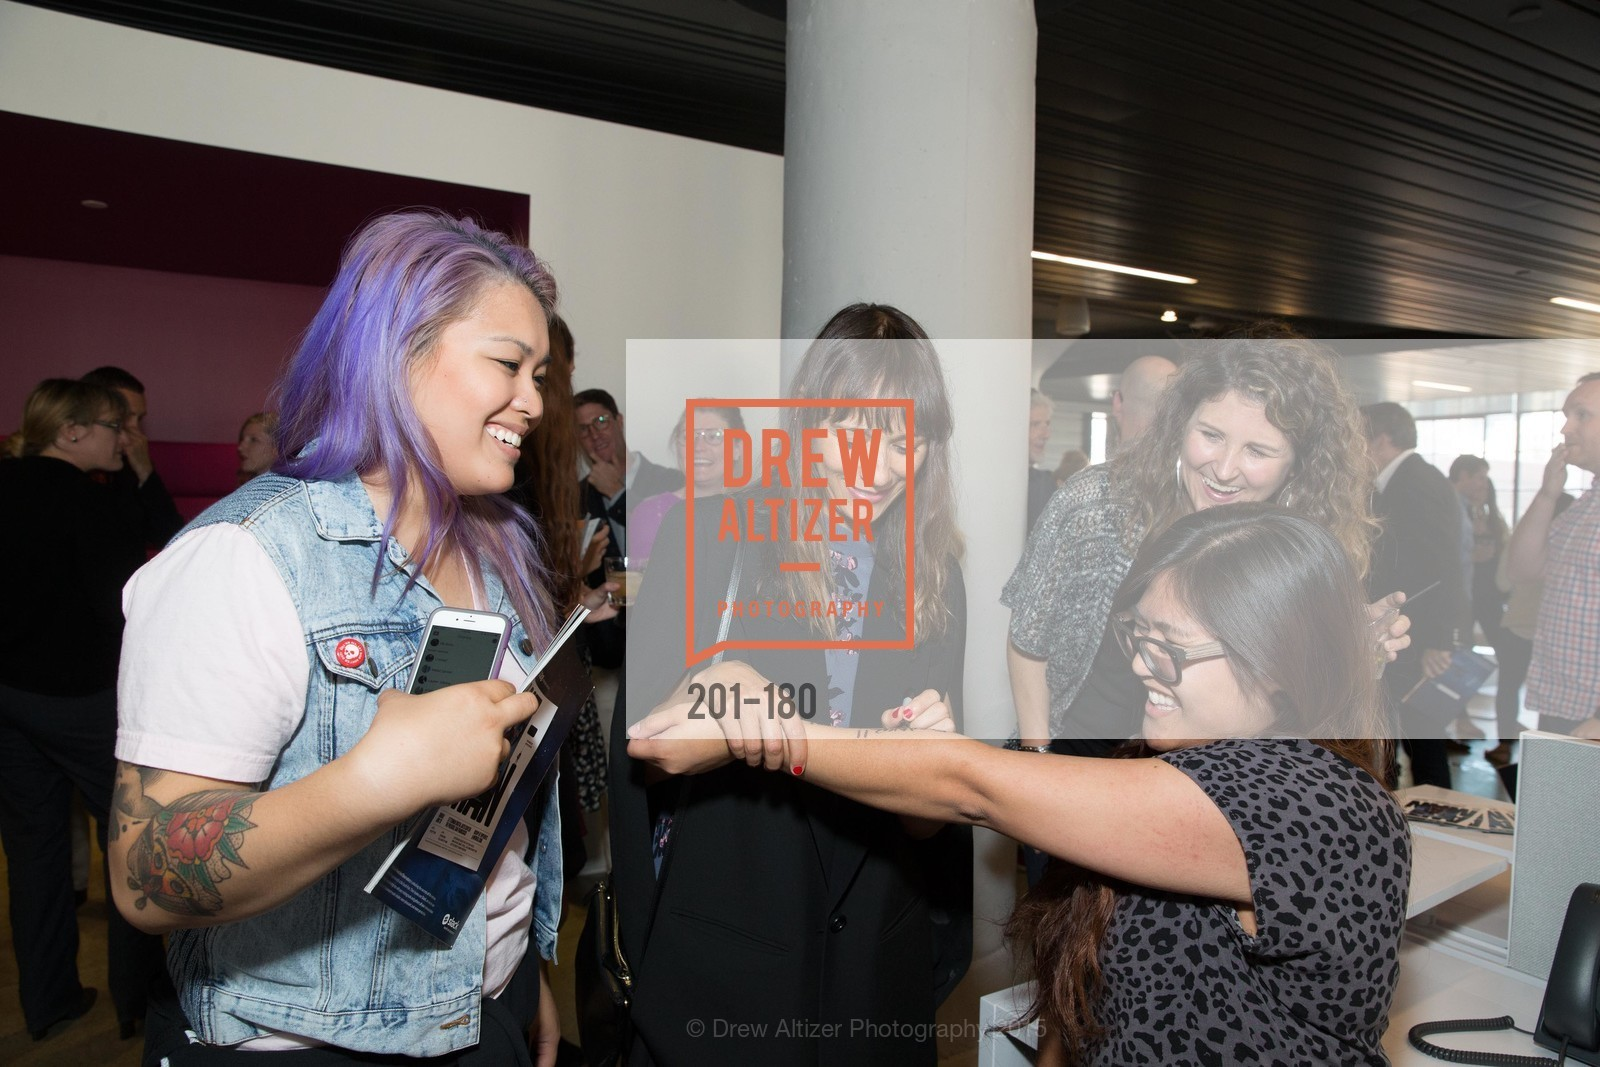 Extras, Wired Magazine July Cover Release Celebration at New Wired Office, June 24th, 2015, Photo,Drew Altizer, Drew Altizer Photography, full-service agency, private events, San Francisco photographer, photographer california